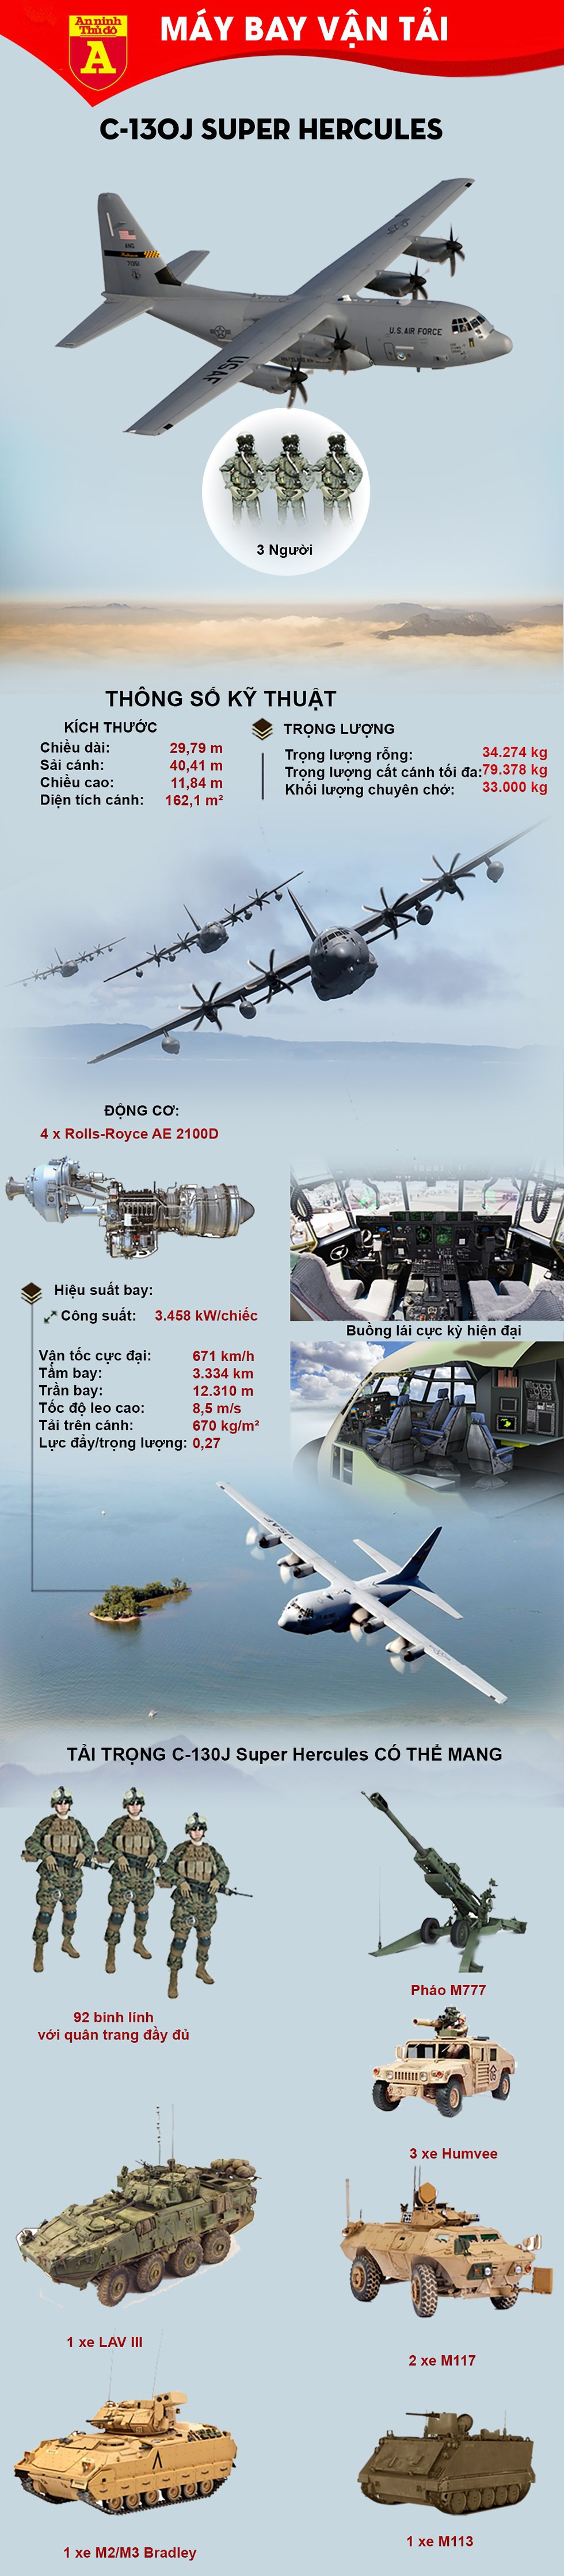 "chien tranh bien gioi 1979: viet nam su dung ""luc si"" c-130 my nhu the nao? hinh anh 2"